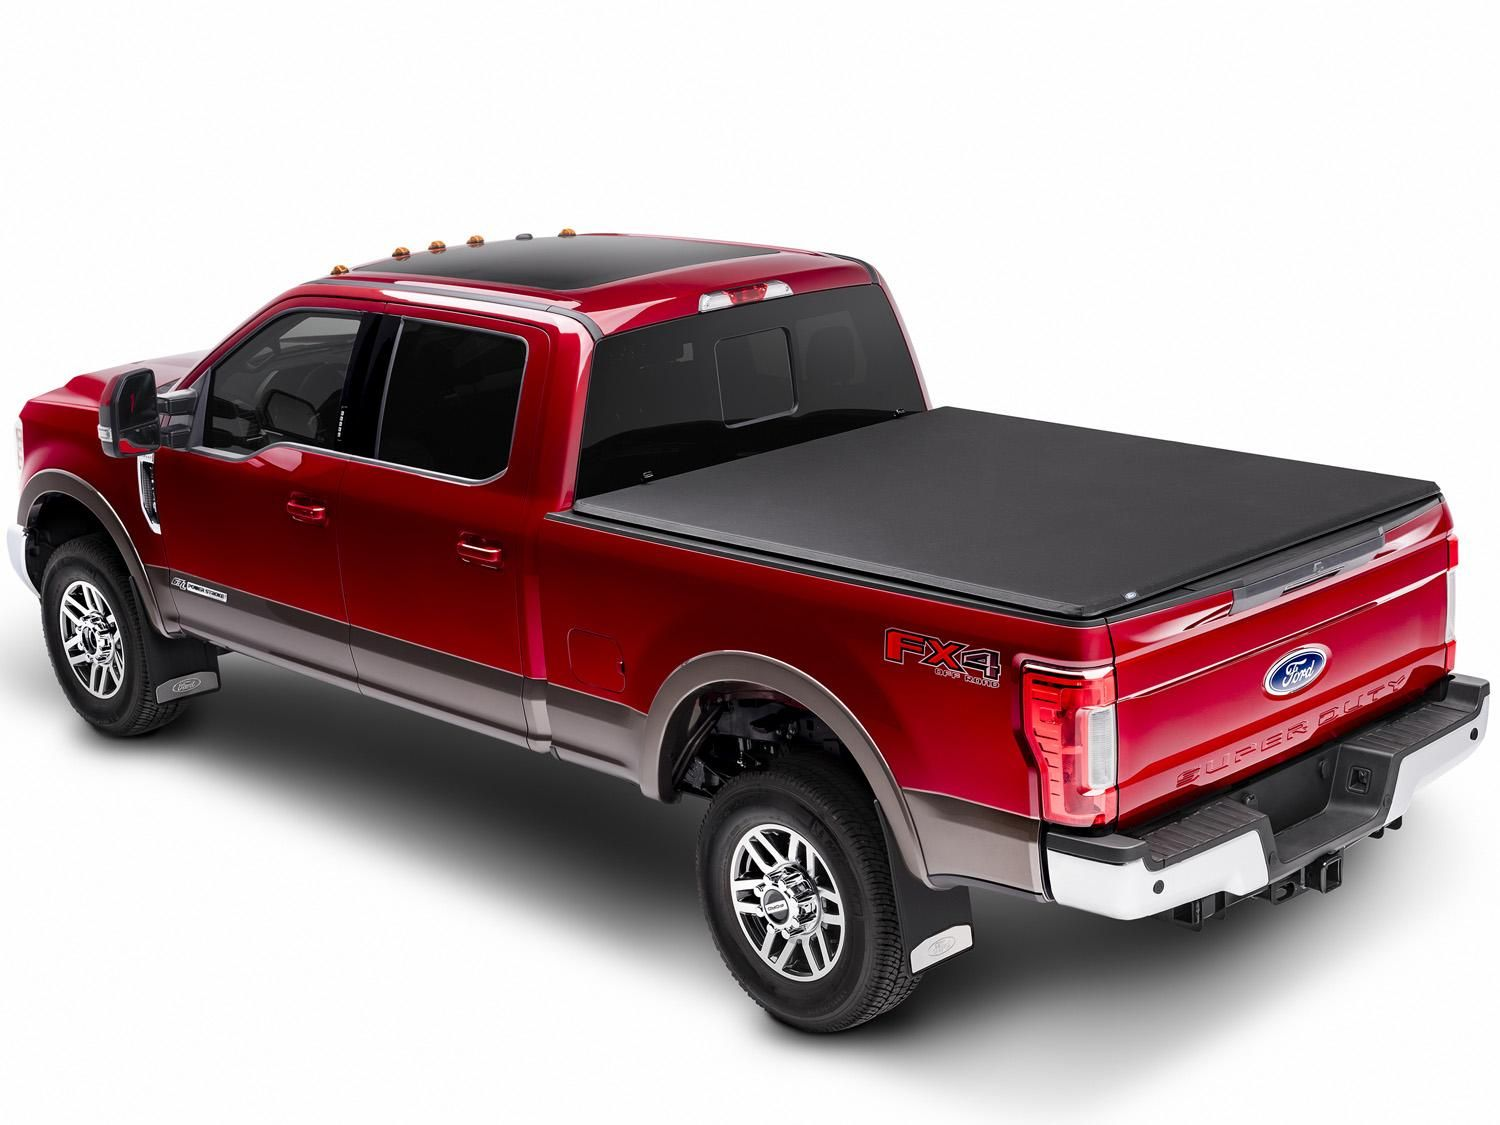 Tonneau Cover - Soft Trifold For 8.0 Bed